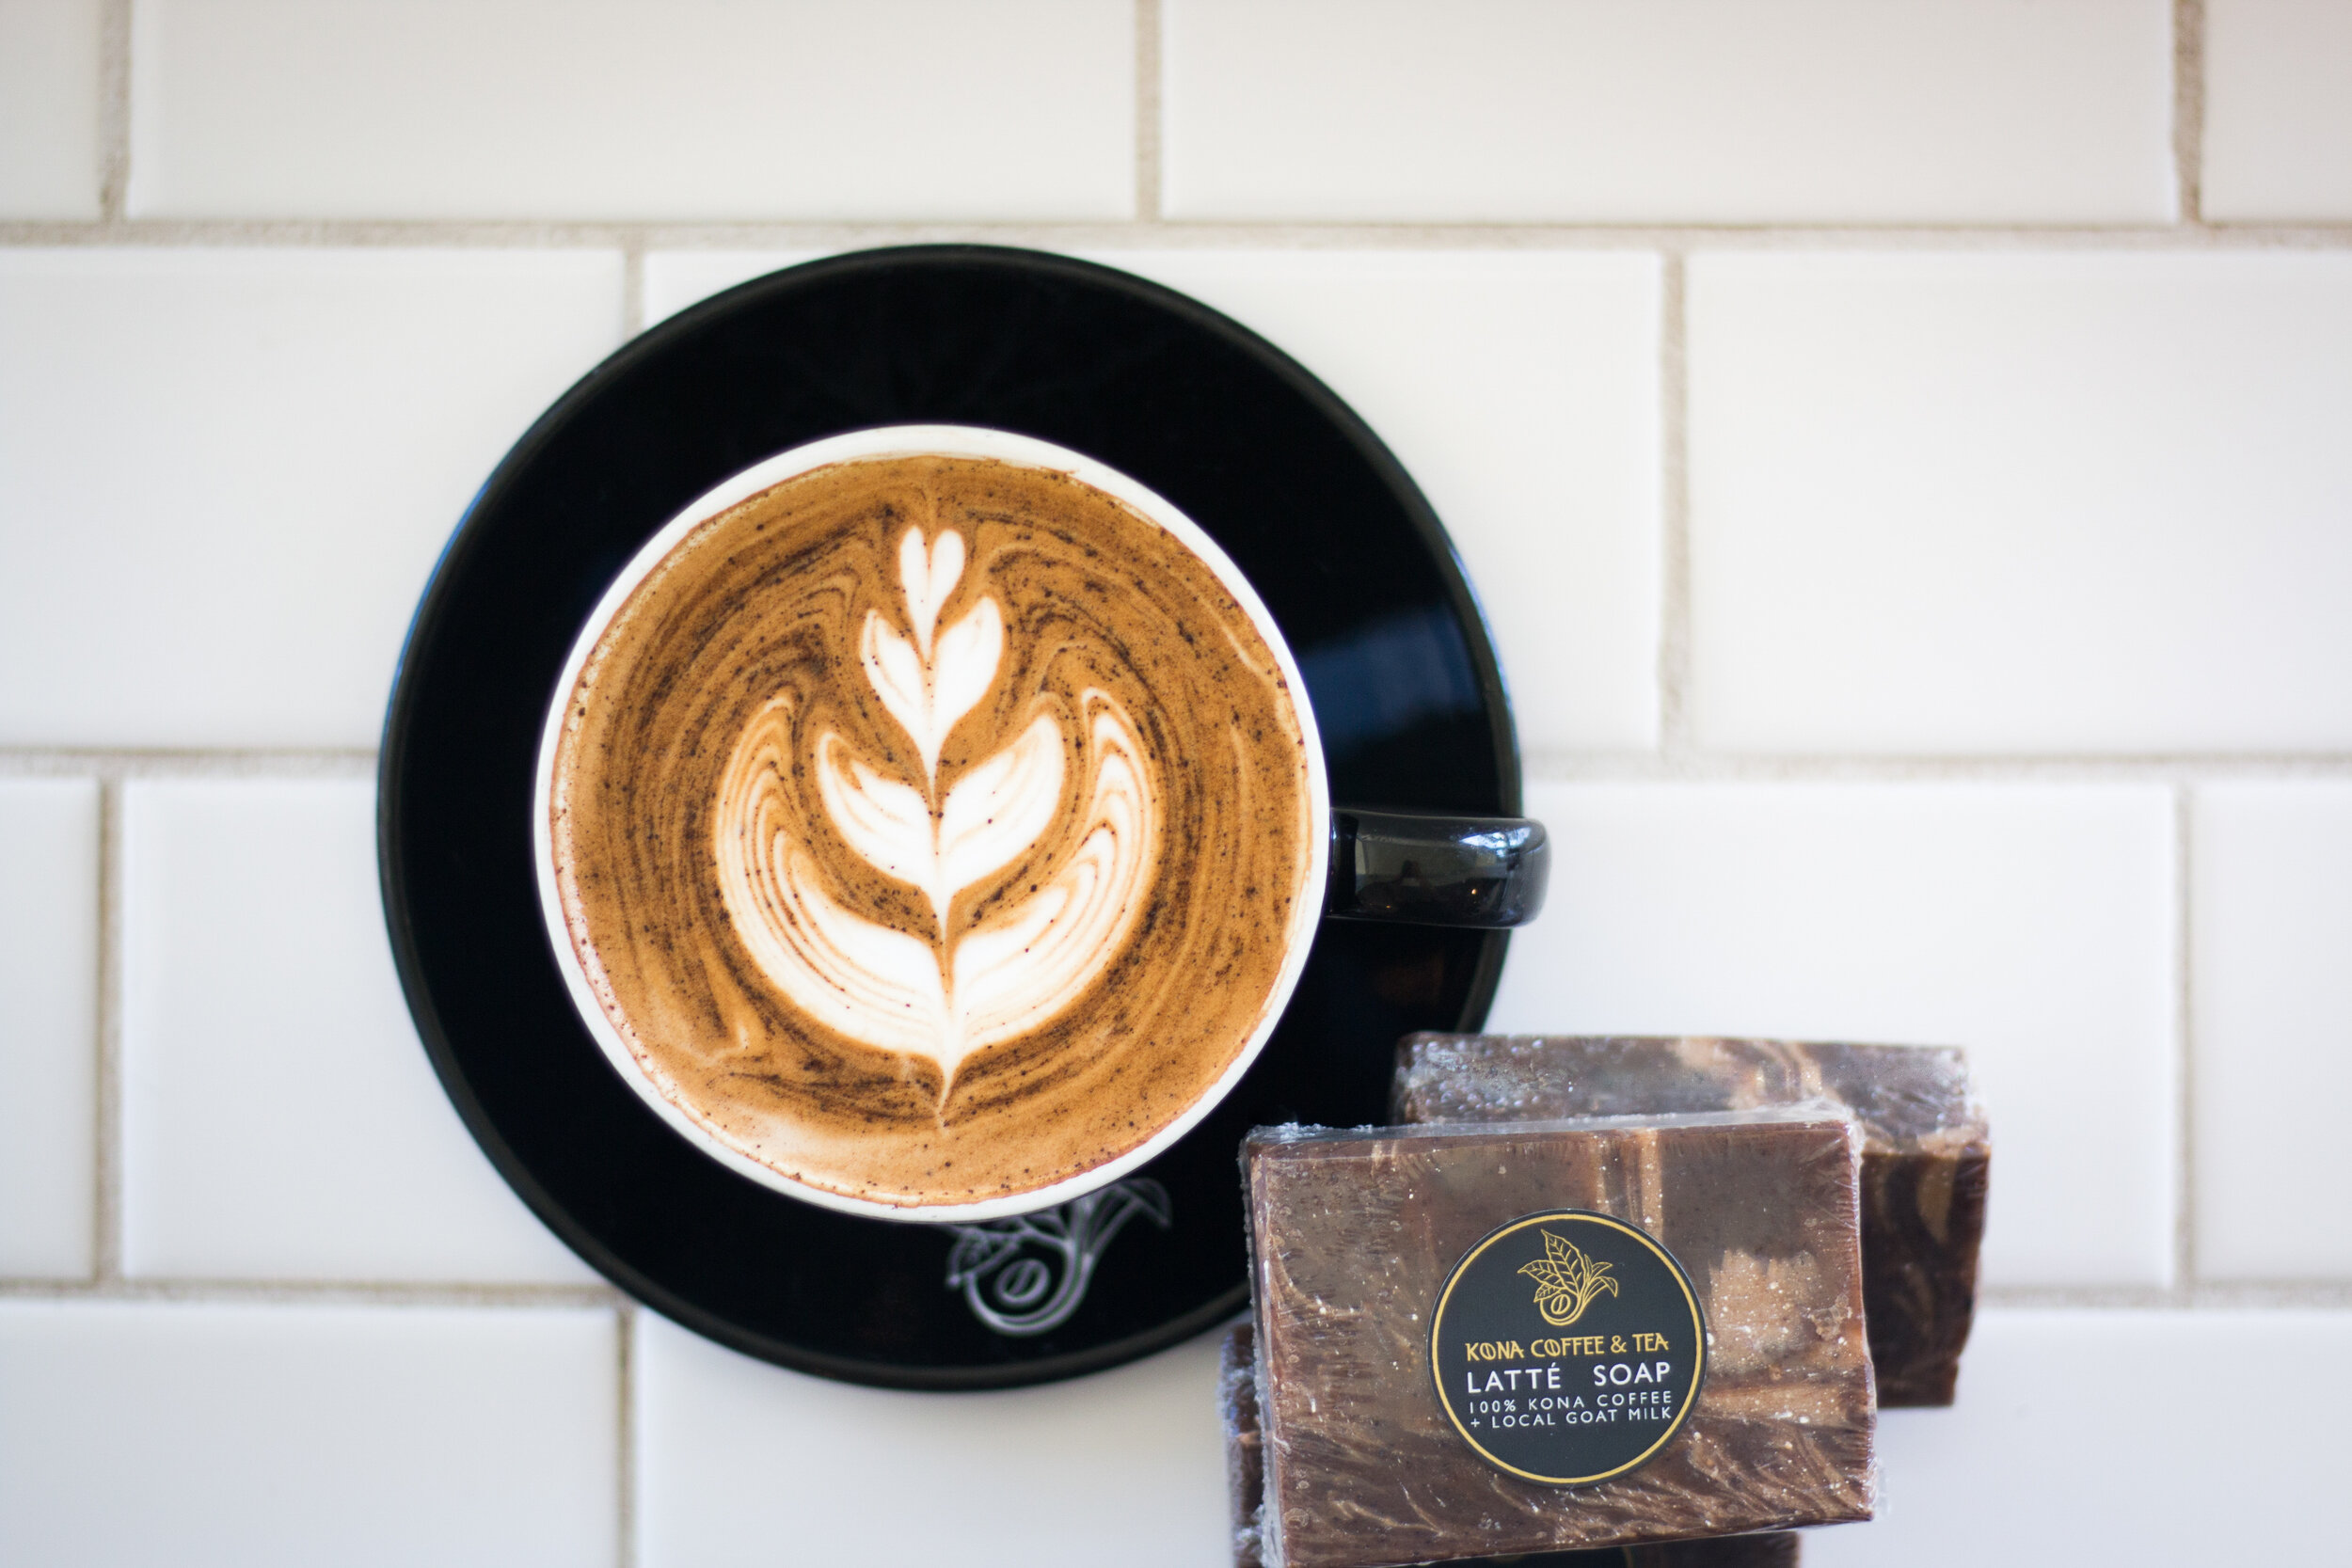 Our Latté Soap is made with 100% Kona Coffee & Tea Strong Brewed Coffee, Olive Oil, Coconut Oil, RSPO Palm Oil, Avocado Oil, Sunflower Oil, Castor Oil, Big Island Goats Milk, Titanium Dioxide, Coffee Grounds, and Hawaii Sea Salt. Phalate Free Fragrance. PHOTO: Chance Ortiz